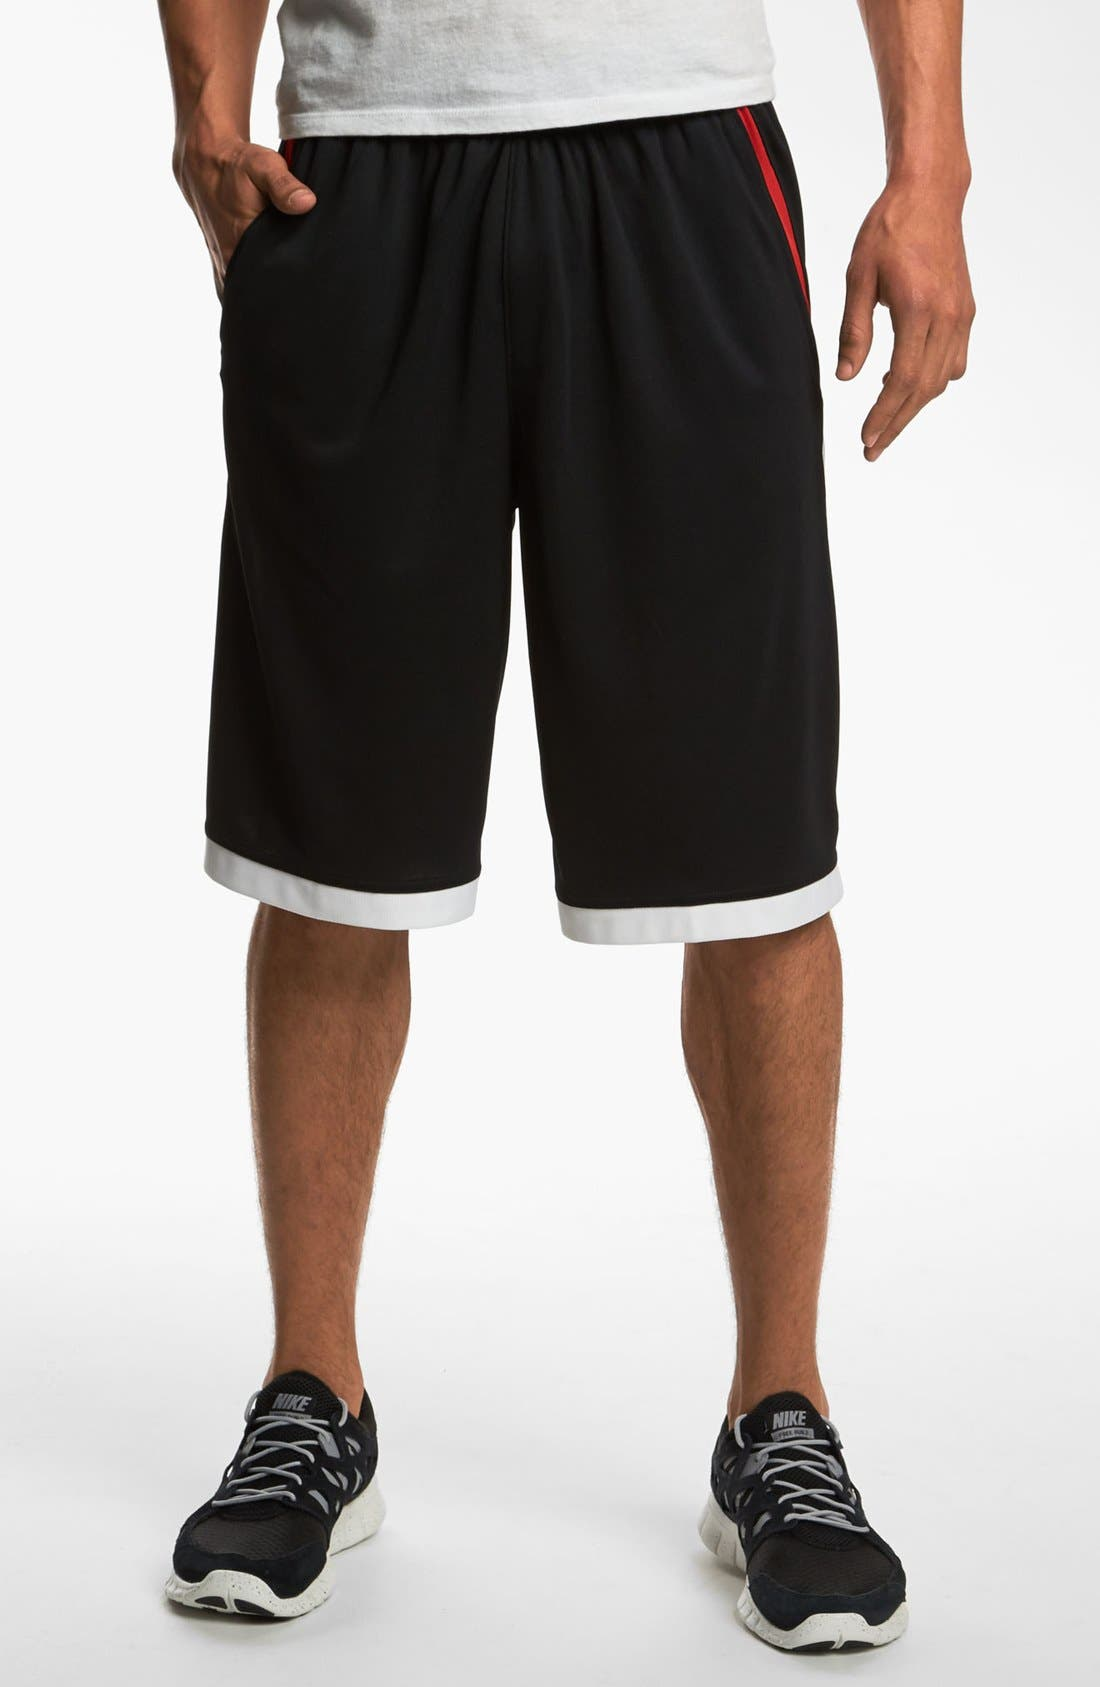 Alternate Image 1 Selected - Nike 'Contest' Shorts